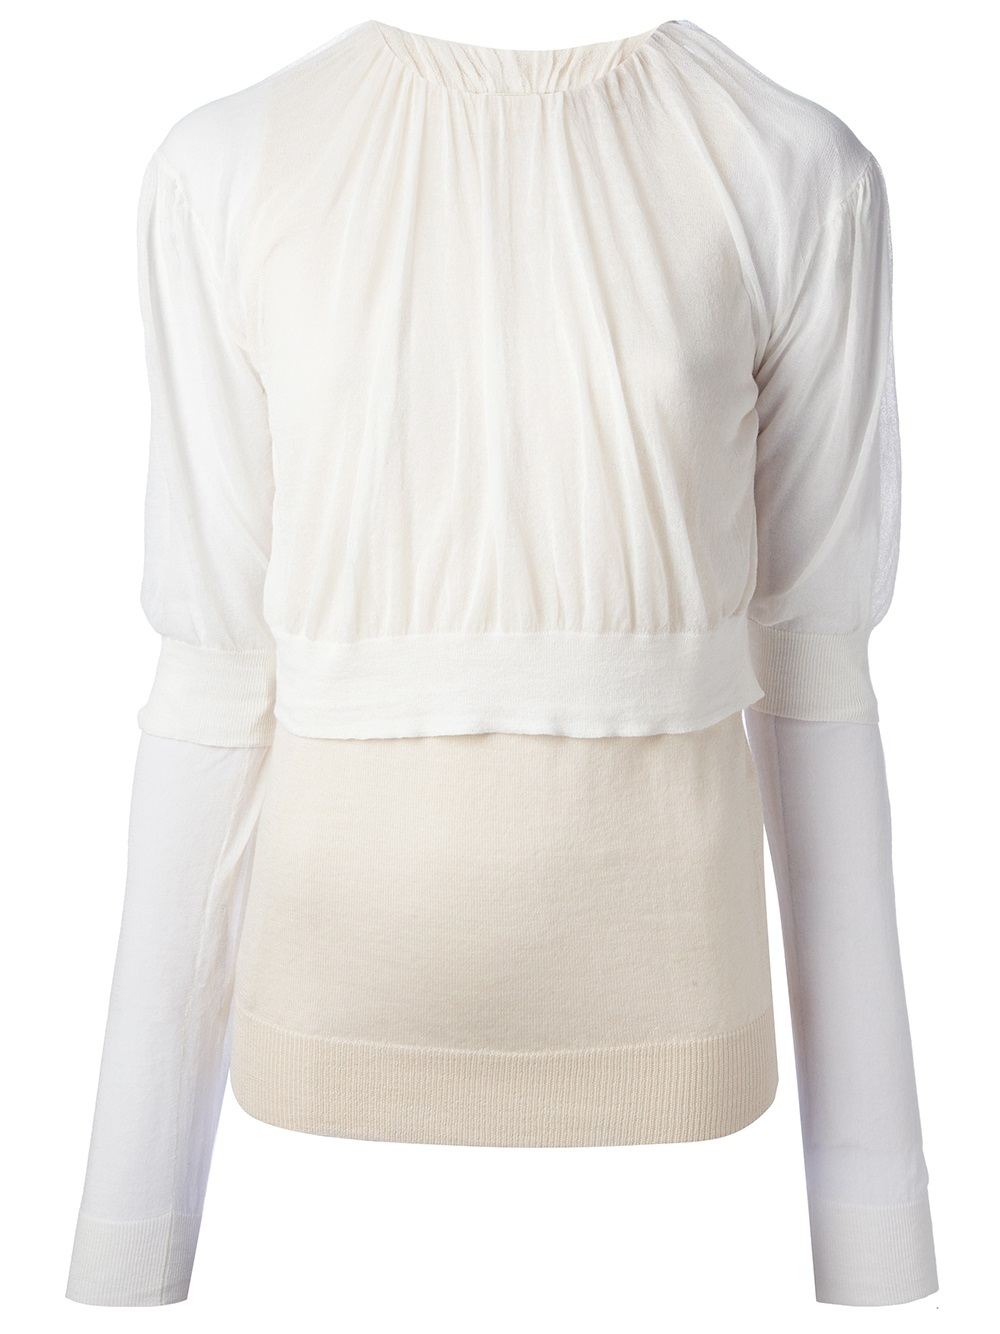 Acne Double Layer Top - Penelope - Farfetch.com_files.jpg